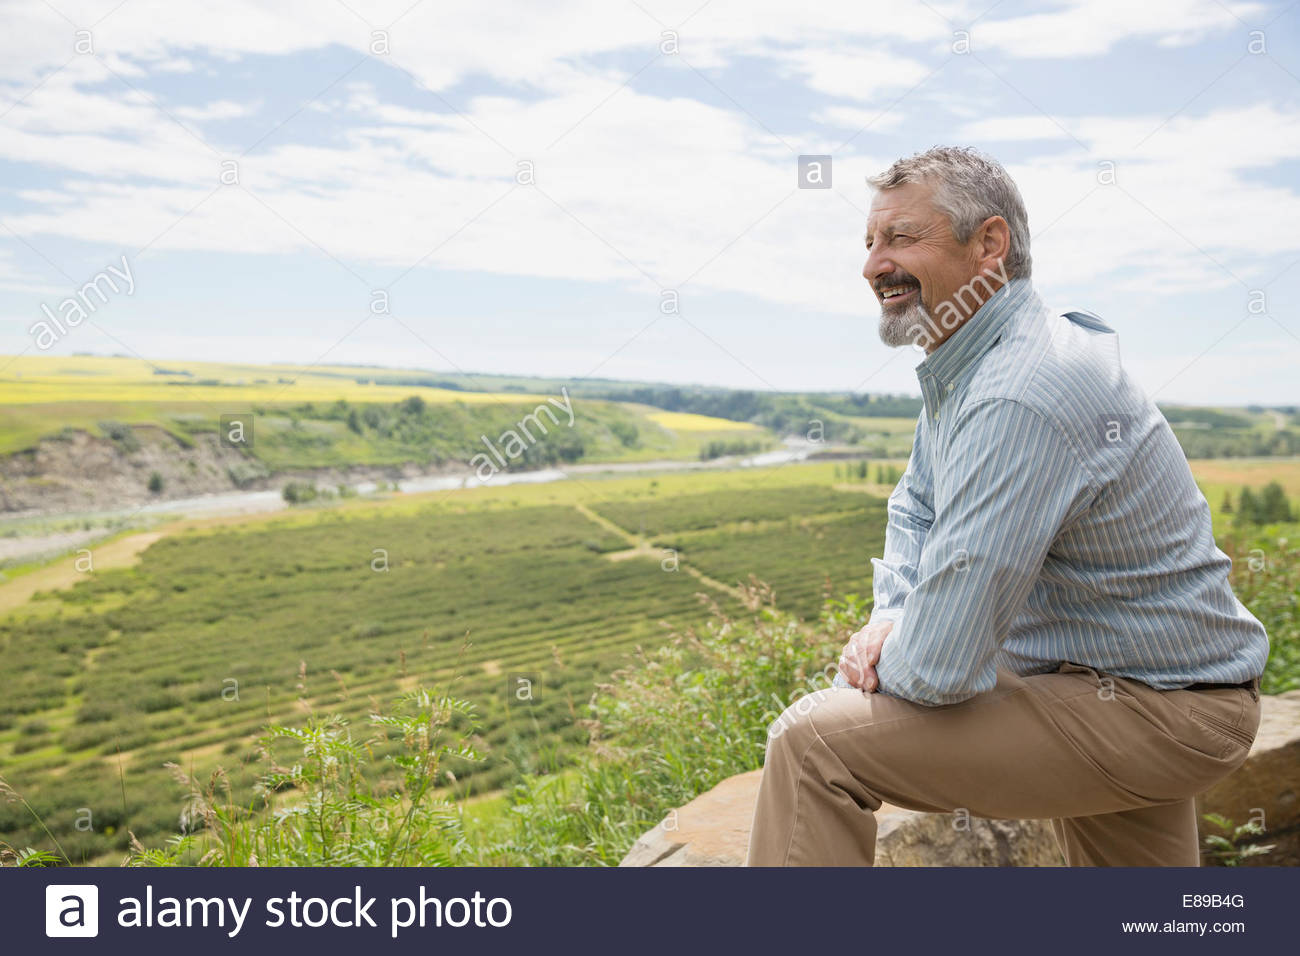 Smiling man looking at view of countryside - Stock Image